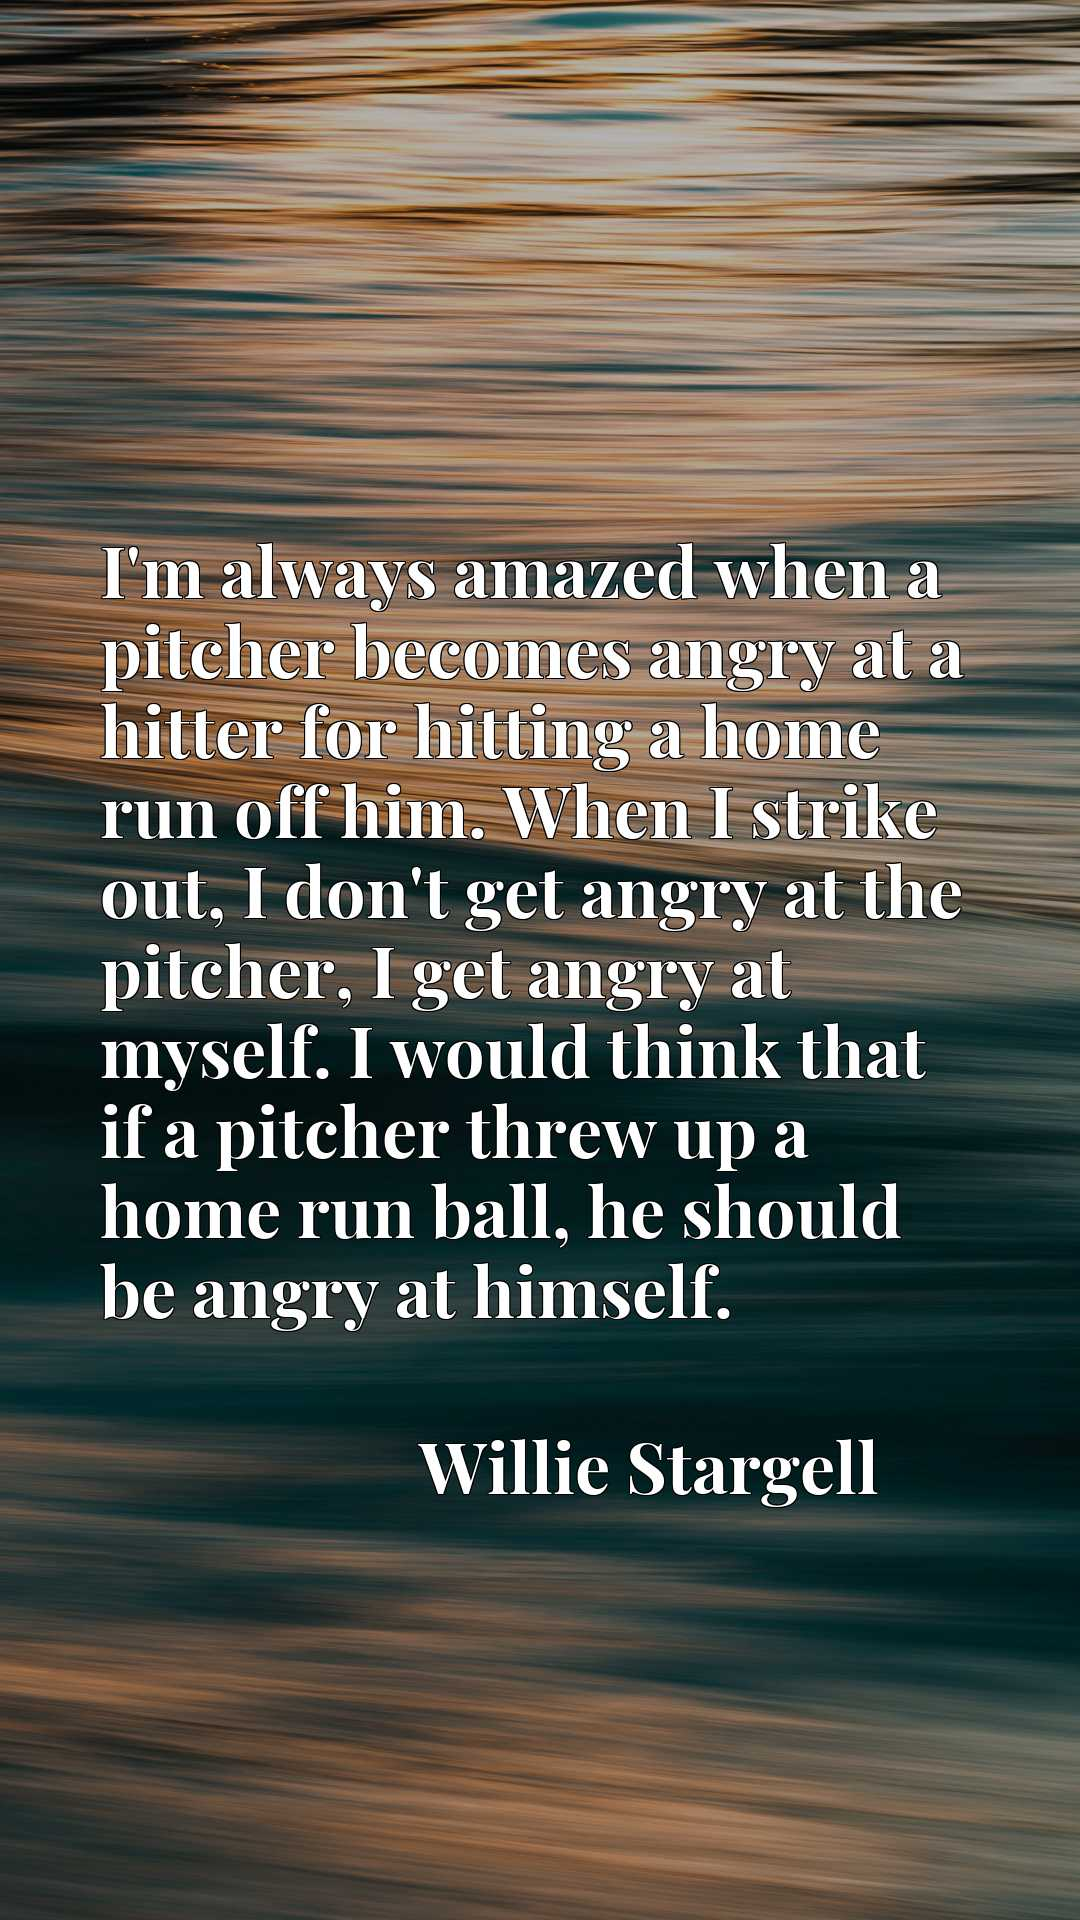 I'm always amazed when a pitcher becomes angry at a hitter for hitting a home run off him. When I strike out, I don't get angry at the pitcher, I get angry at myself. I would think that if a pitcher threw up a home run ball, he should be angry at himself.